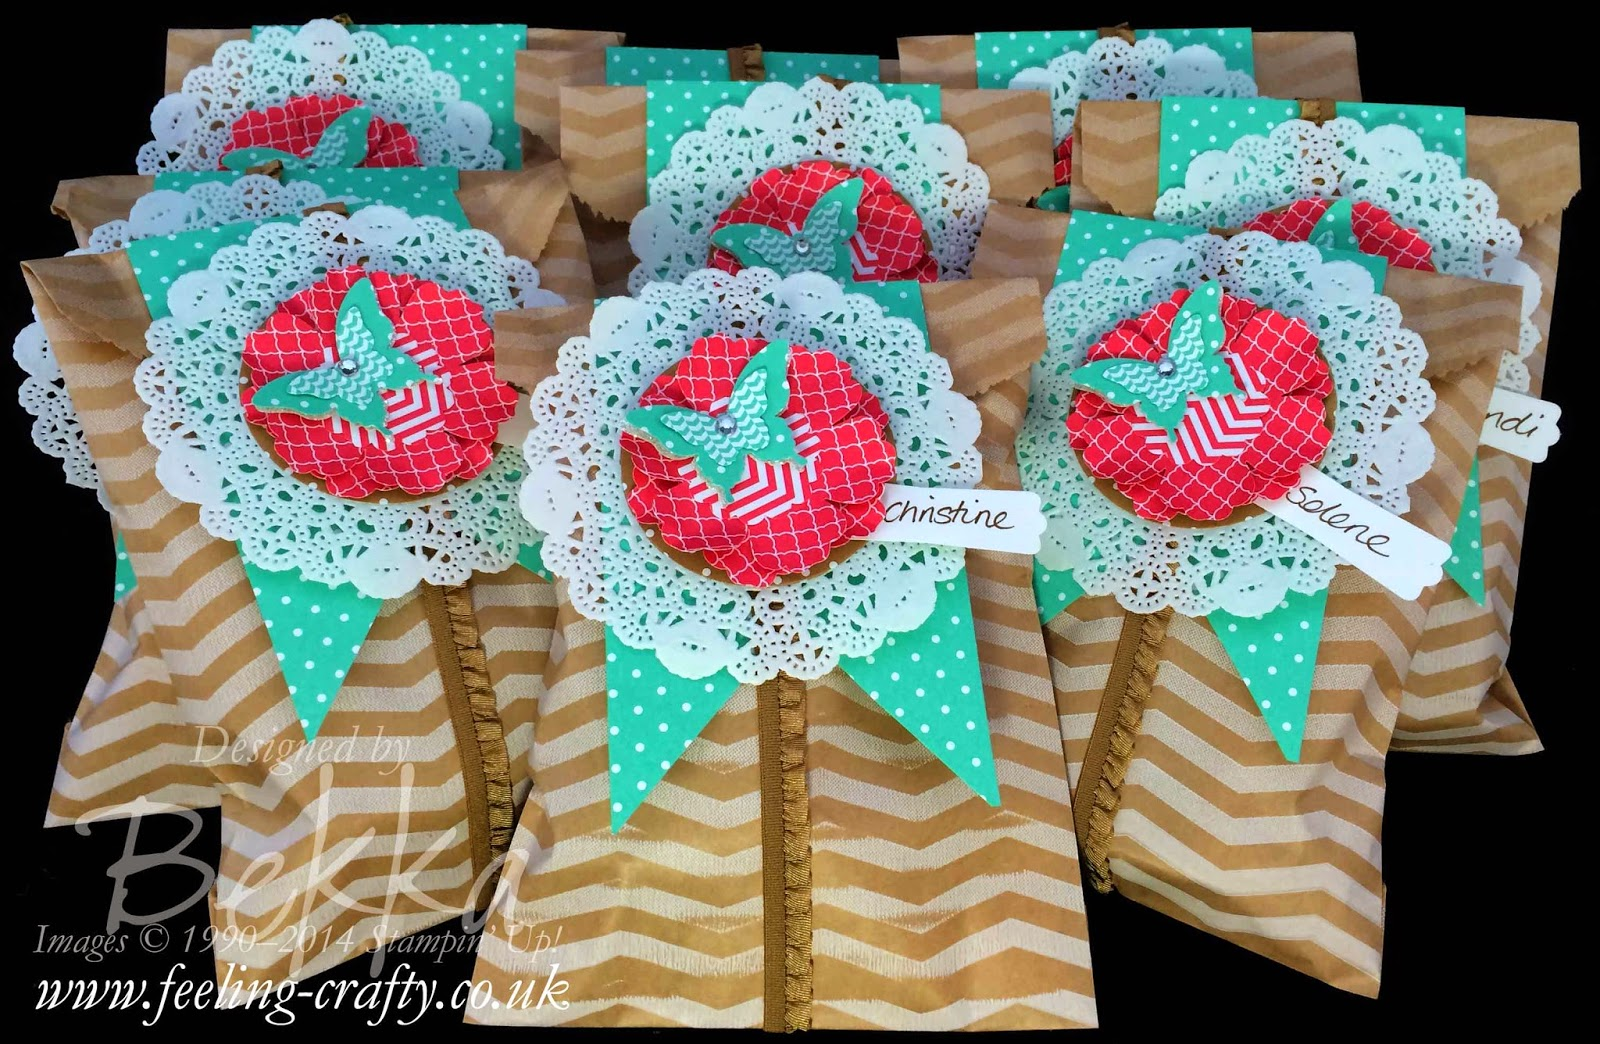 Pretty Packages in Paper Bags by Stampin' Up! UK Independent Demonstrator Bekka Prideaux - check them out here